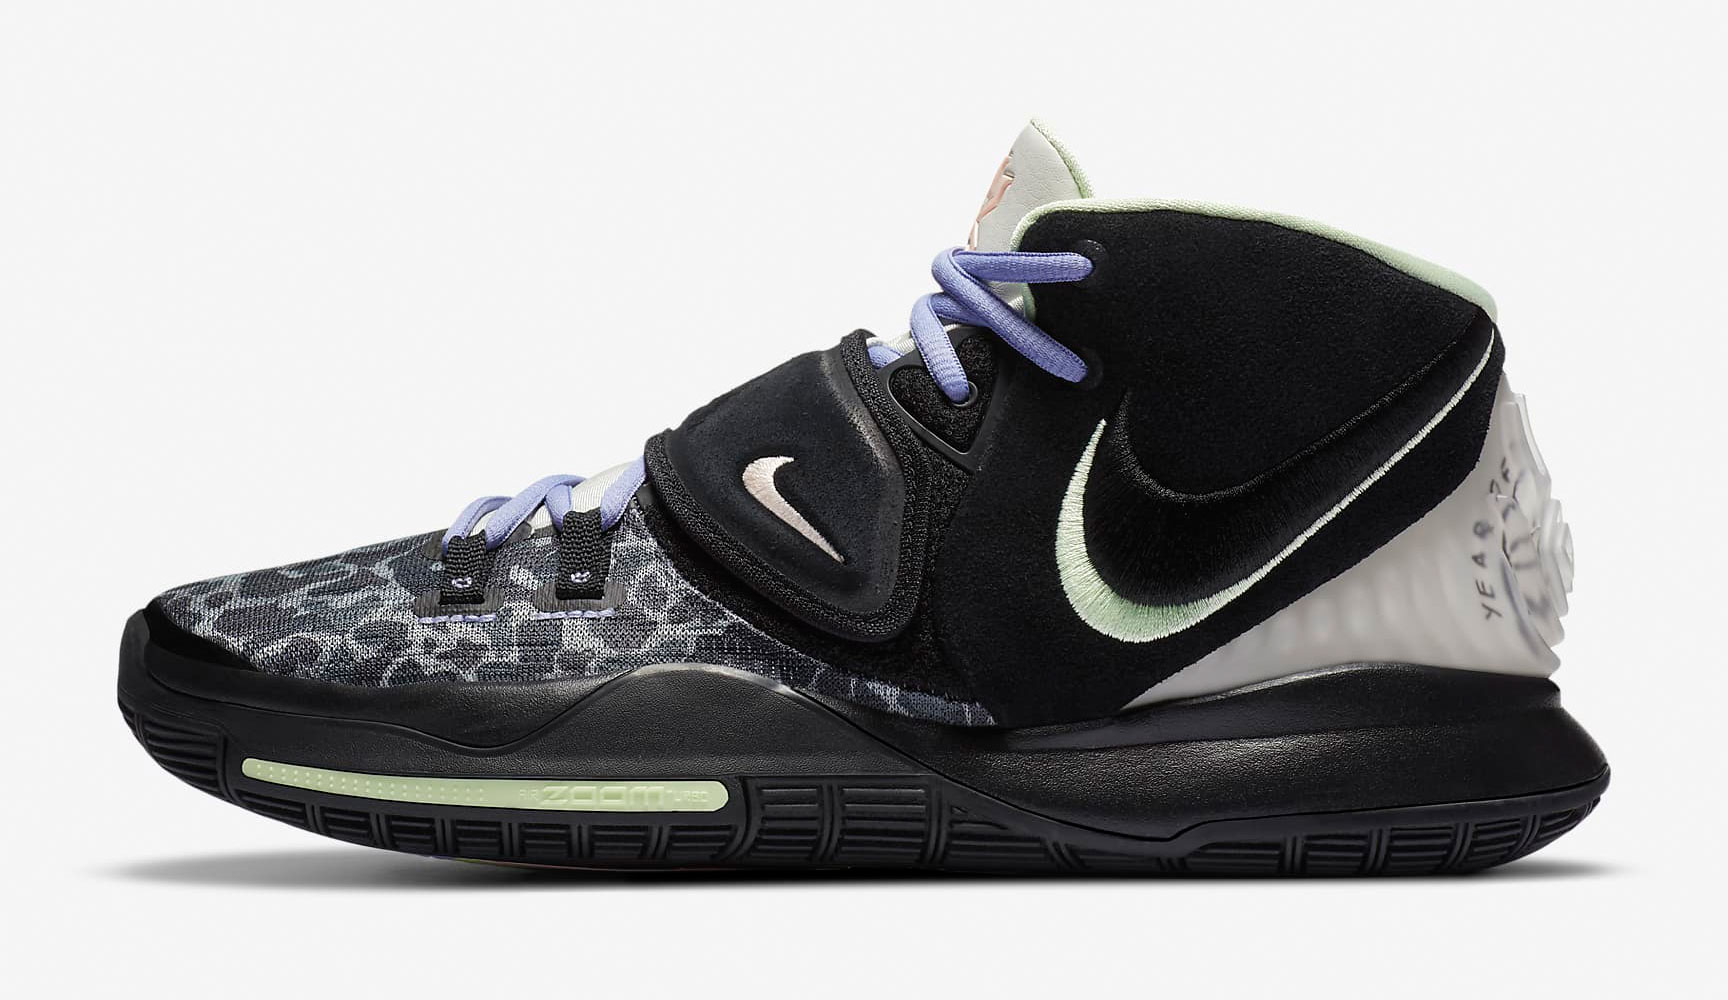 nike-kyrie-6-asia-irving-black-multi-color-release-date